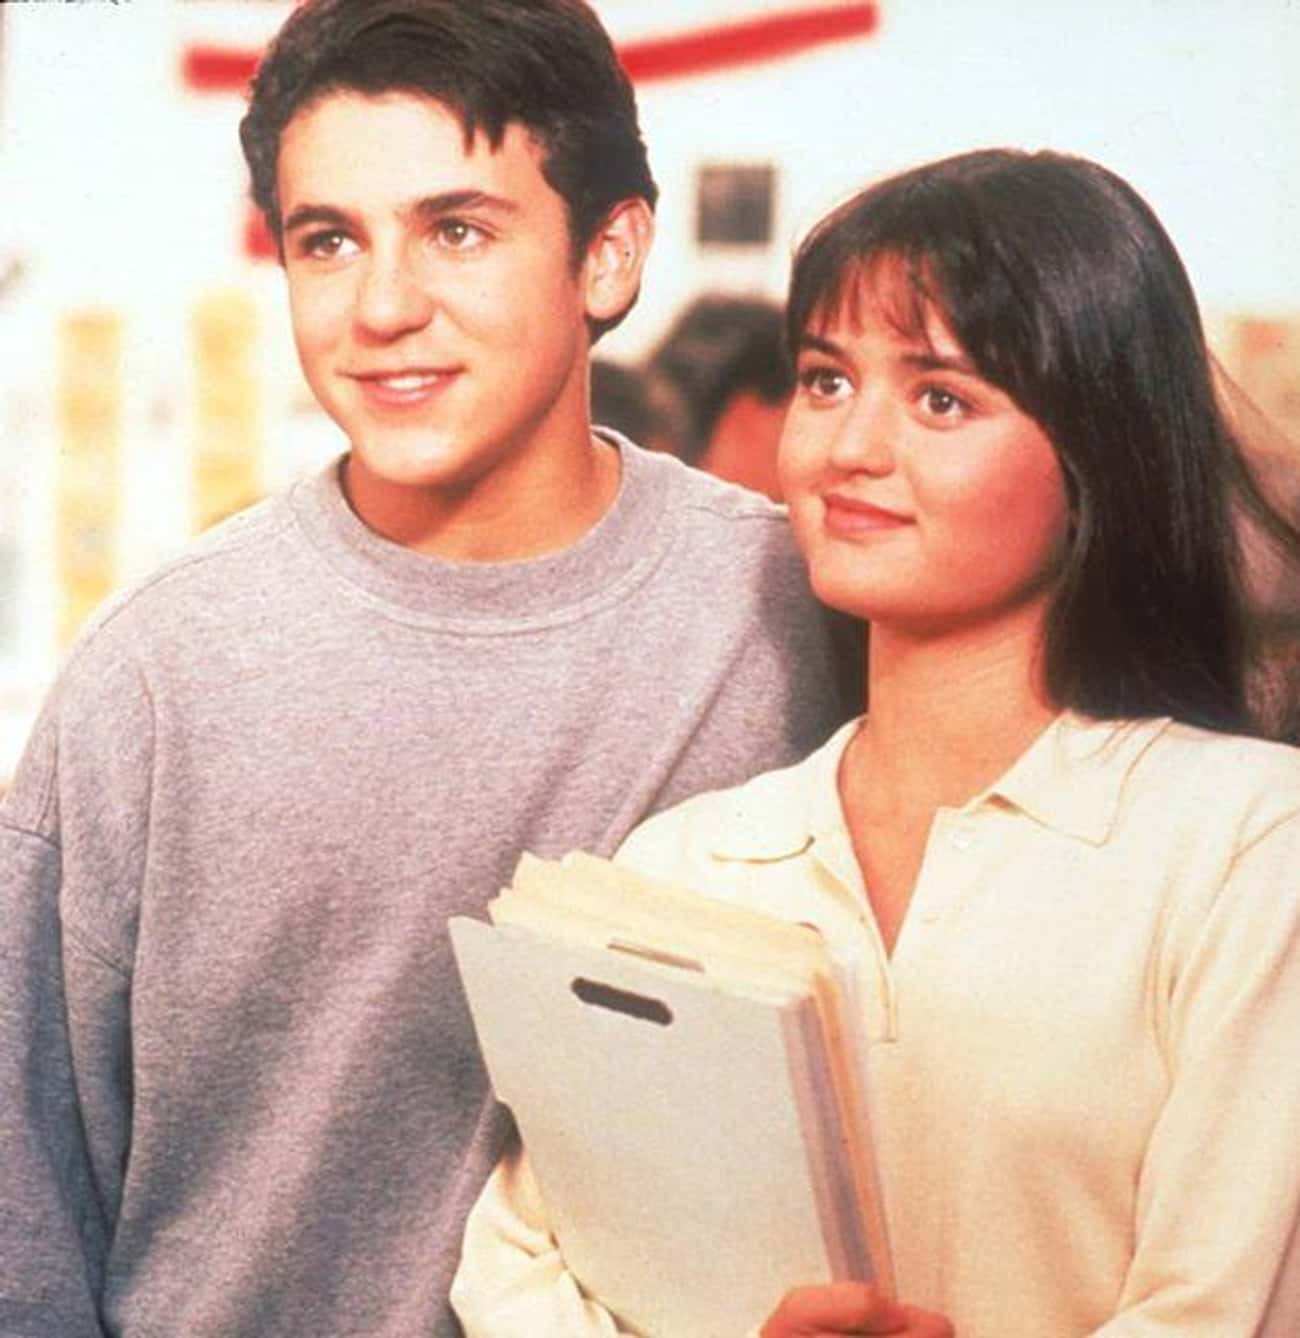 She Received A Degree In Mathe is listed (or ranked) 1 on the list What Has Danica McKellar Been Up To Since 'The Wonder Years'?